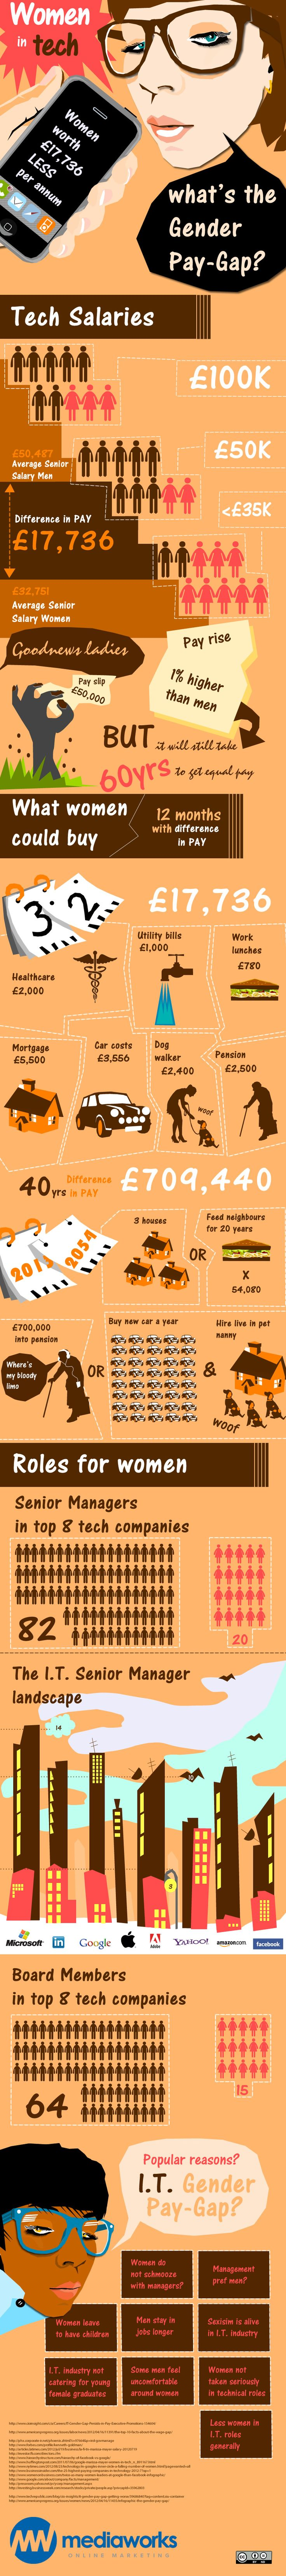 infographic on the gender pay gap